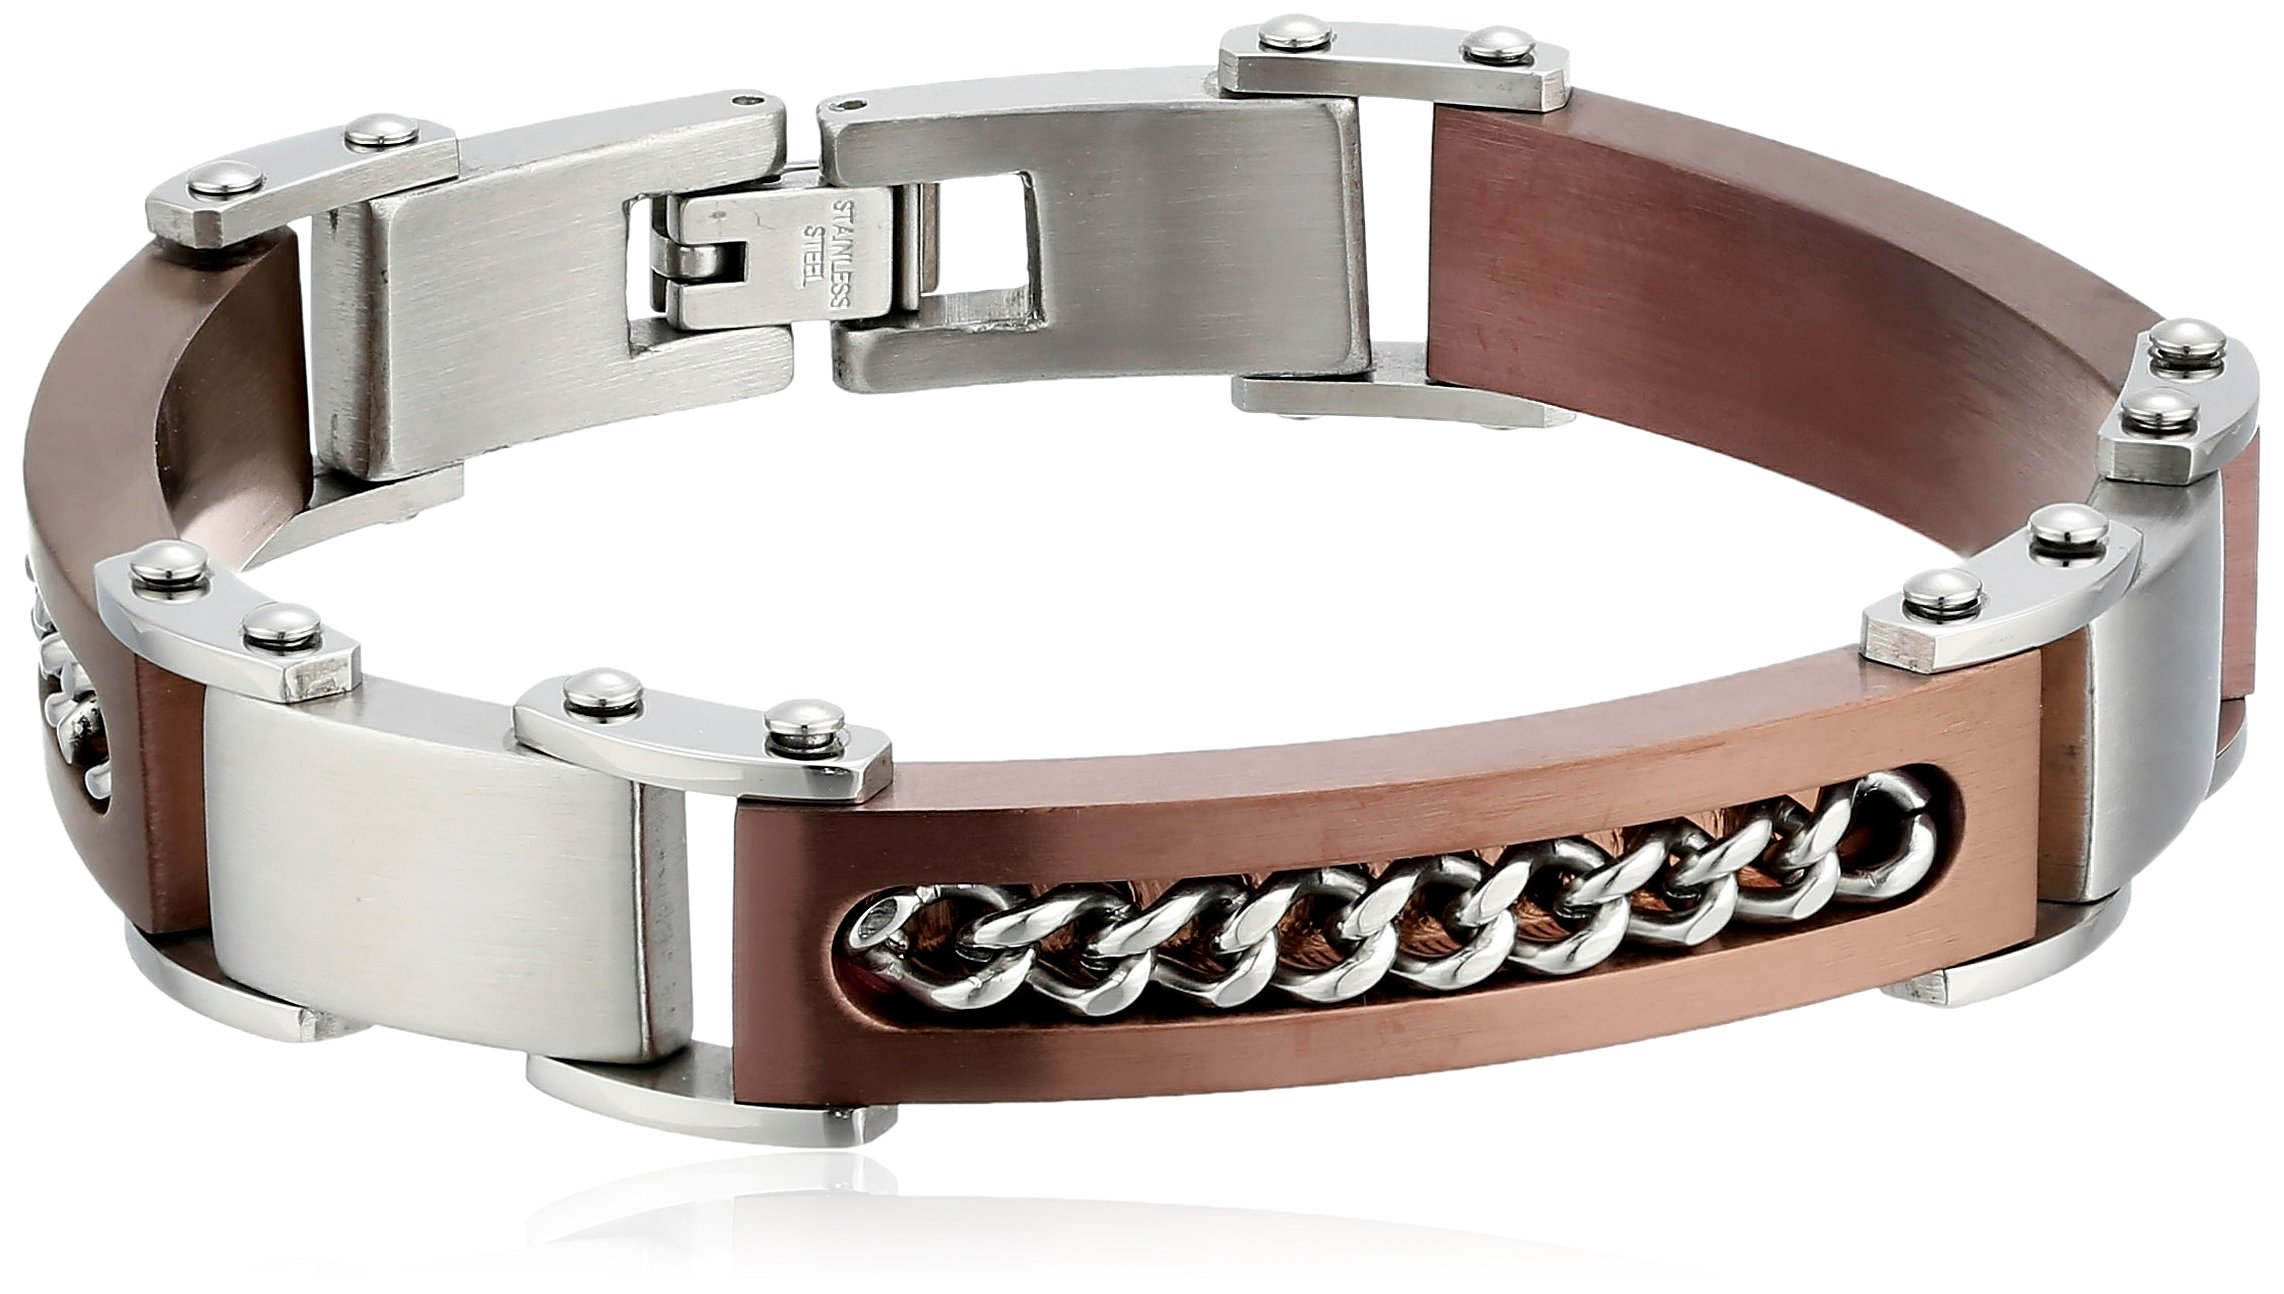 Cold Steel Men's Stainless Steel Brown Immersion Bracelet with Chain Inset, 8.5''